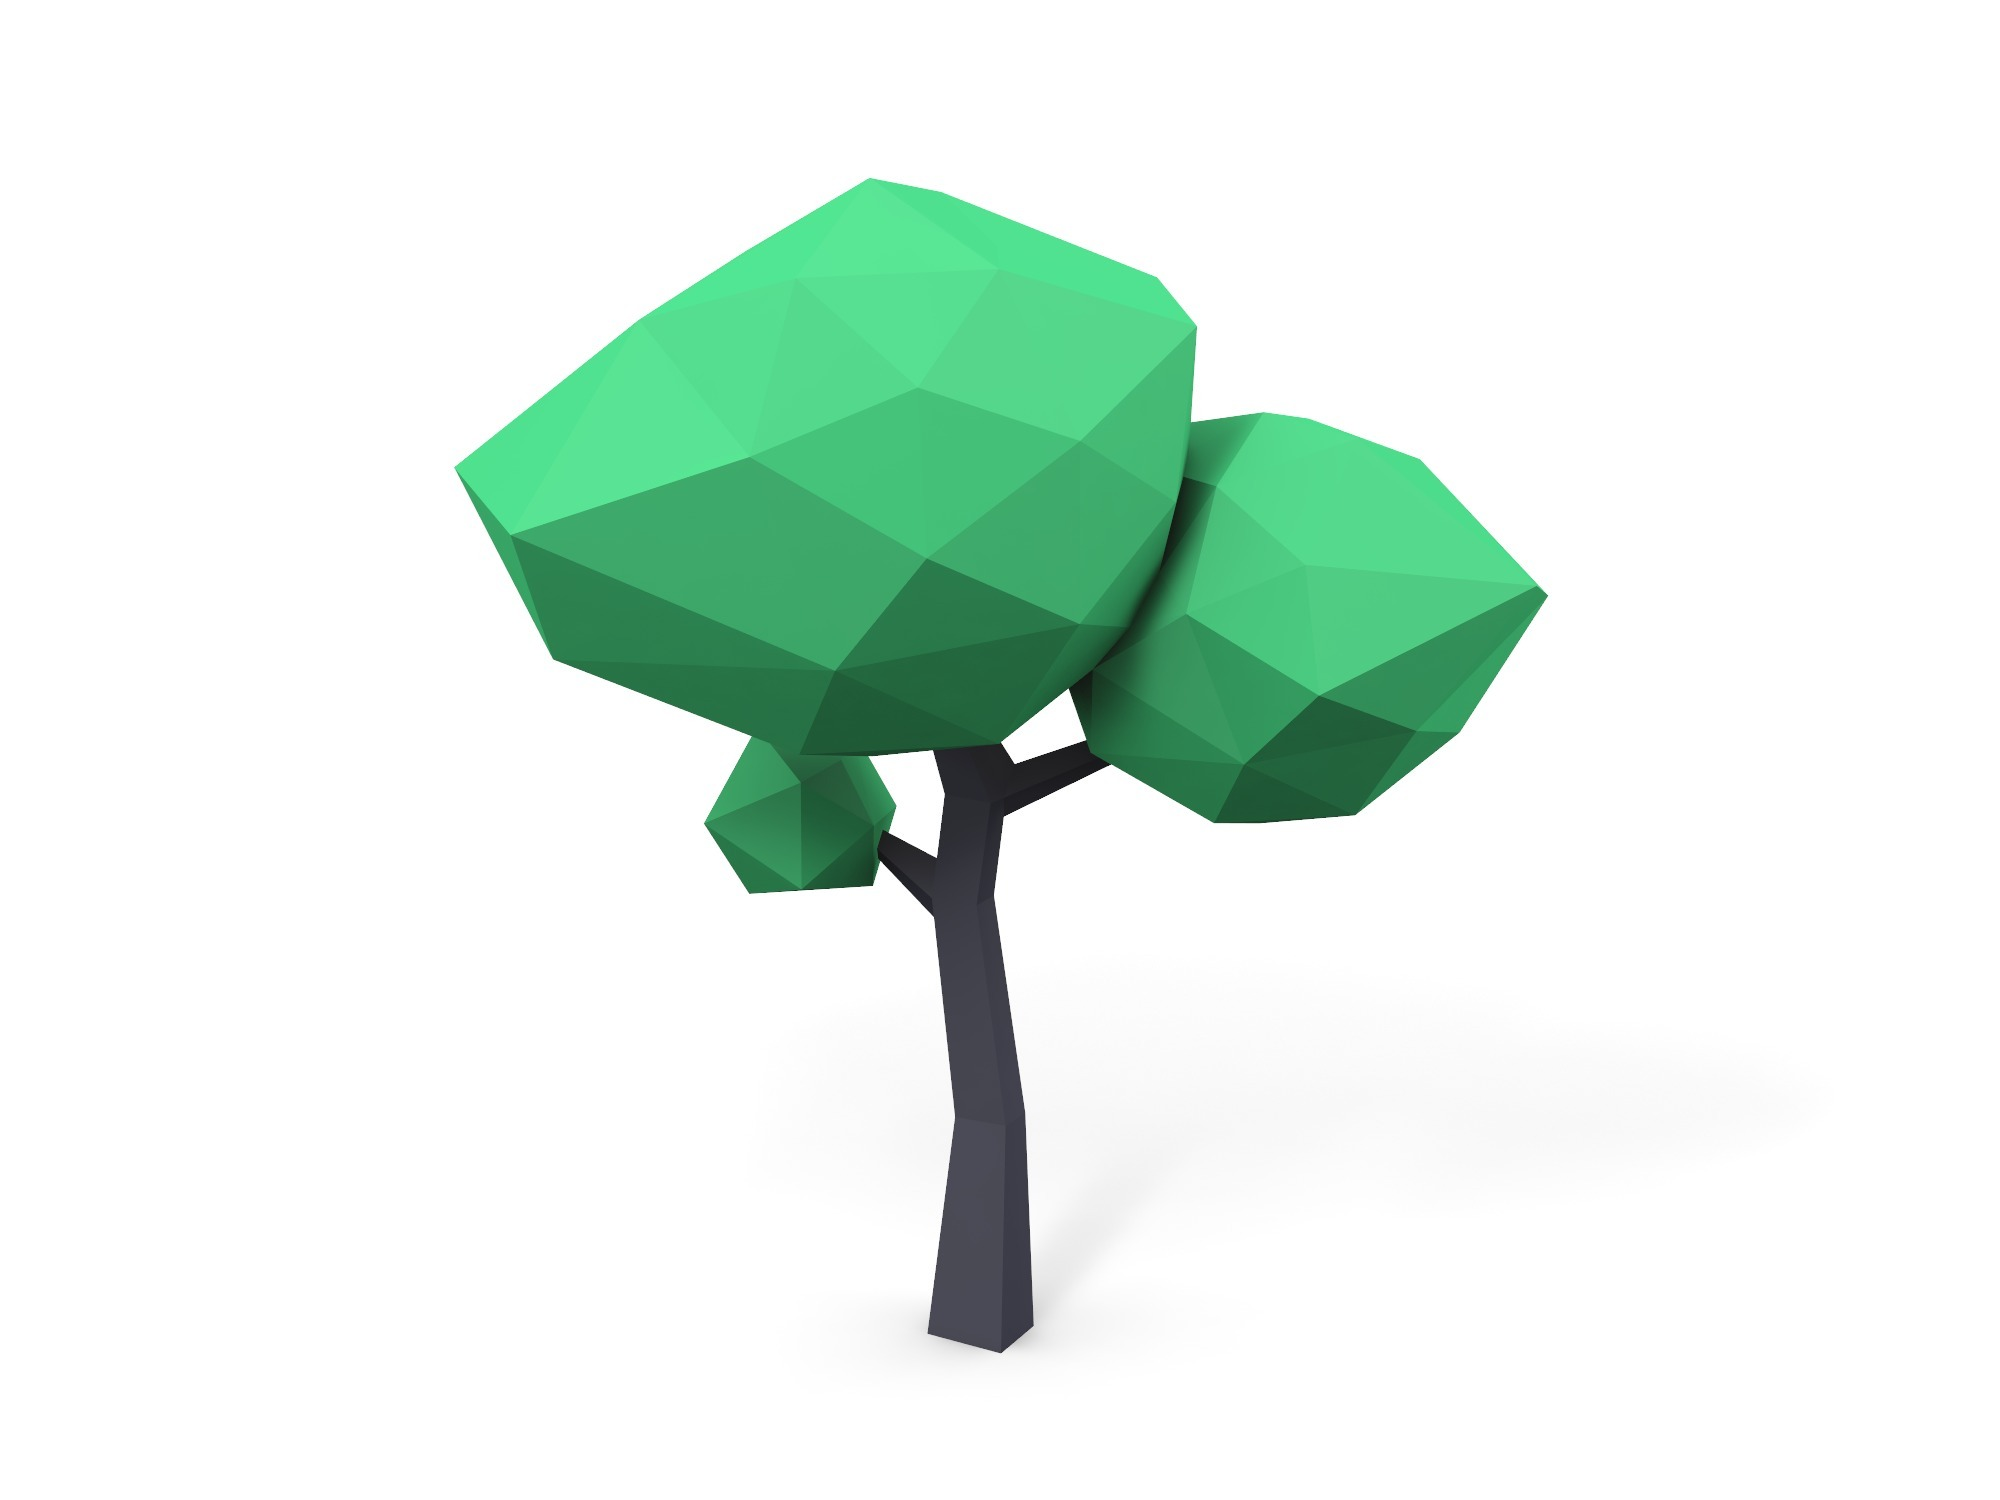 Ash tree low poly - 3D design by Vectary assets Aug 14, 2018